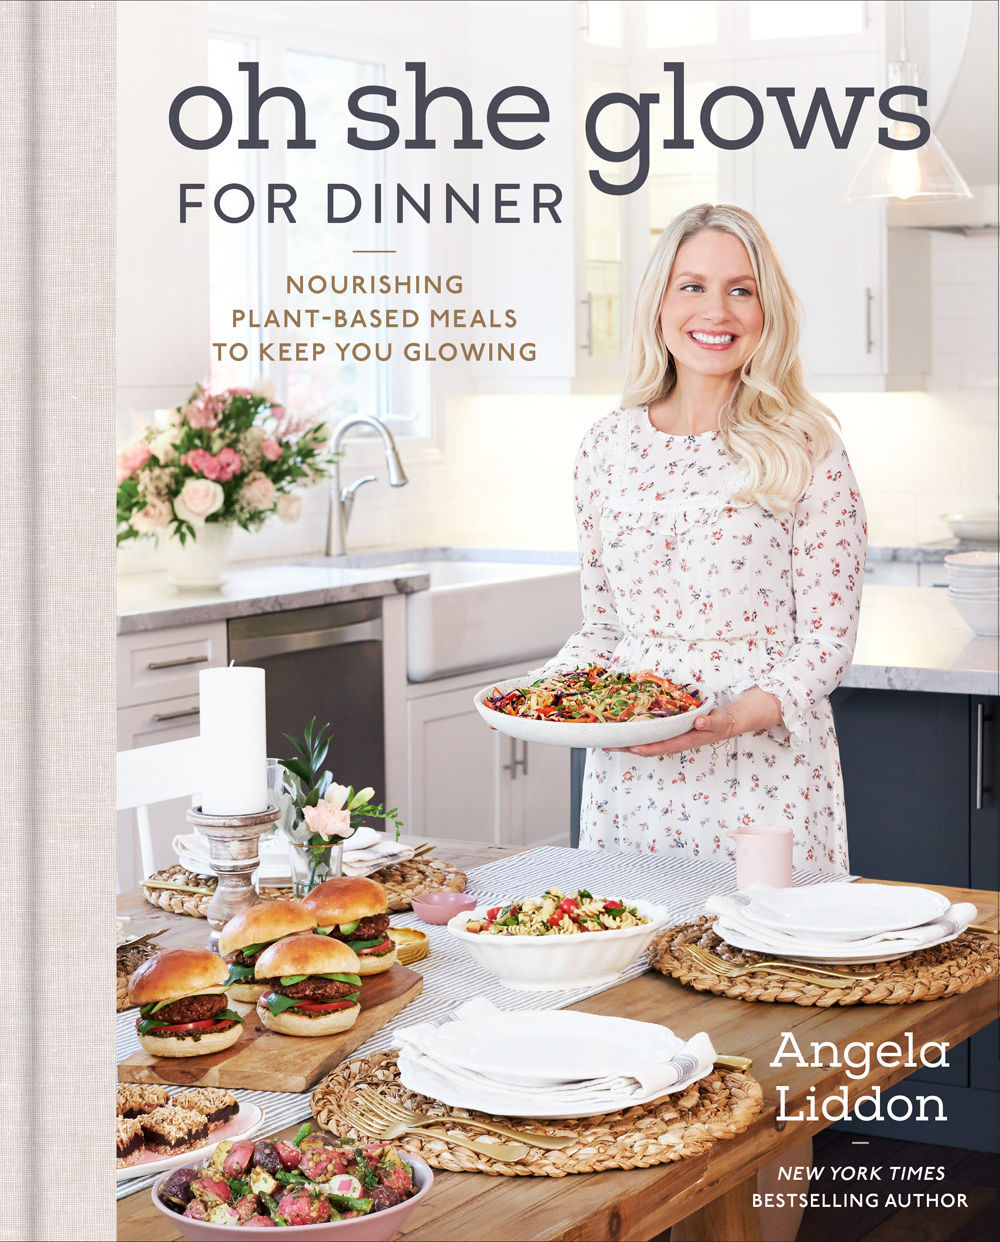 "Image contains a photo of a white woman holding a plate of food in a kitchen. In front of her, there is a wooden table with a number of other dishes. To the left and above her, there is text that says ""Oh She Glows for Dinner"" and ""Nourishing Plant-Based Meals to Keep You Glowing"". In the bottom right-hand side, there is white text that says ""Angela Liddon."""